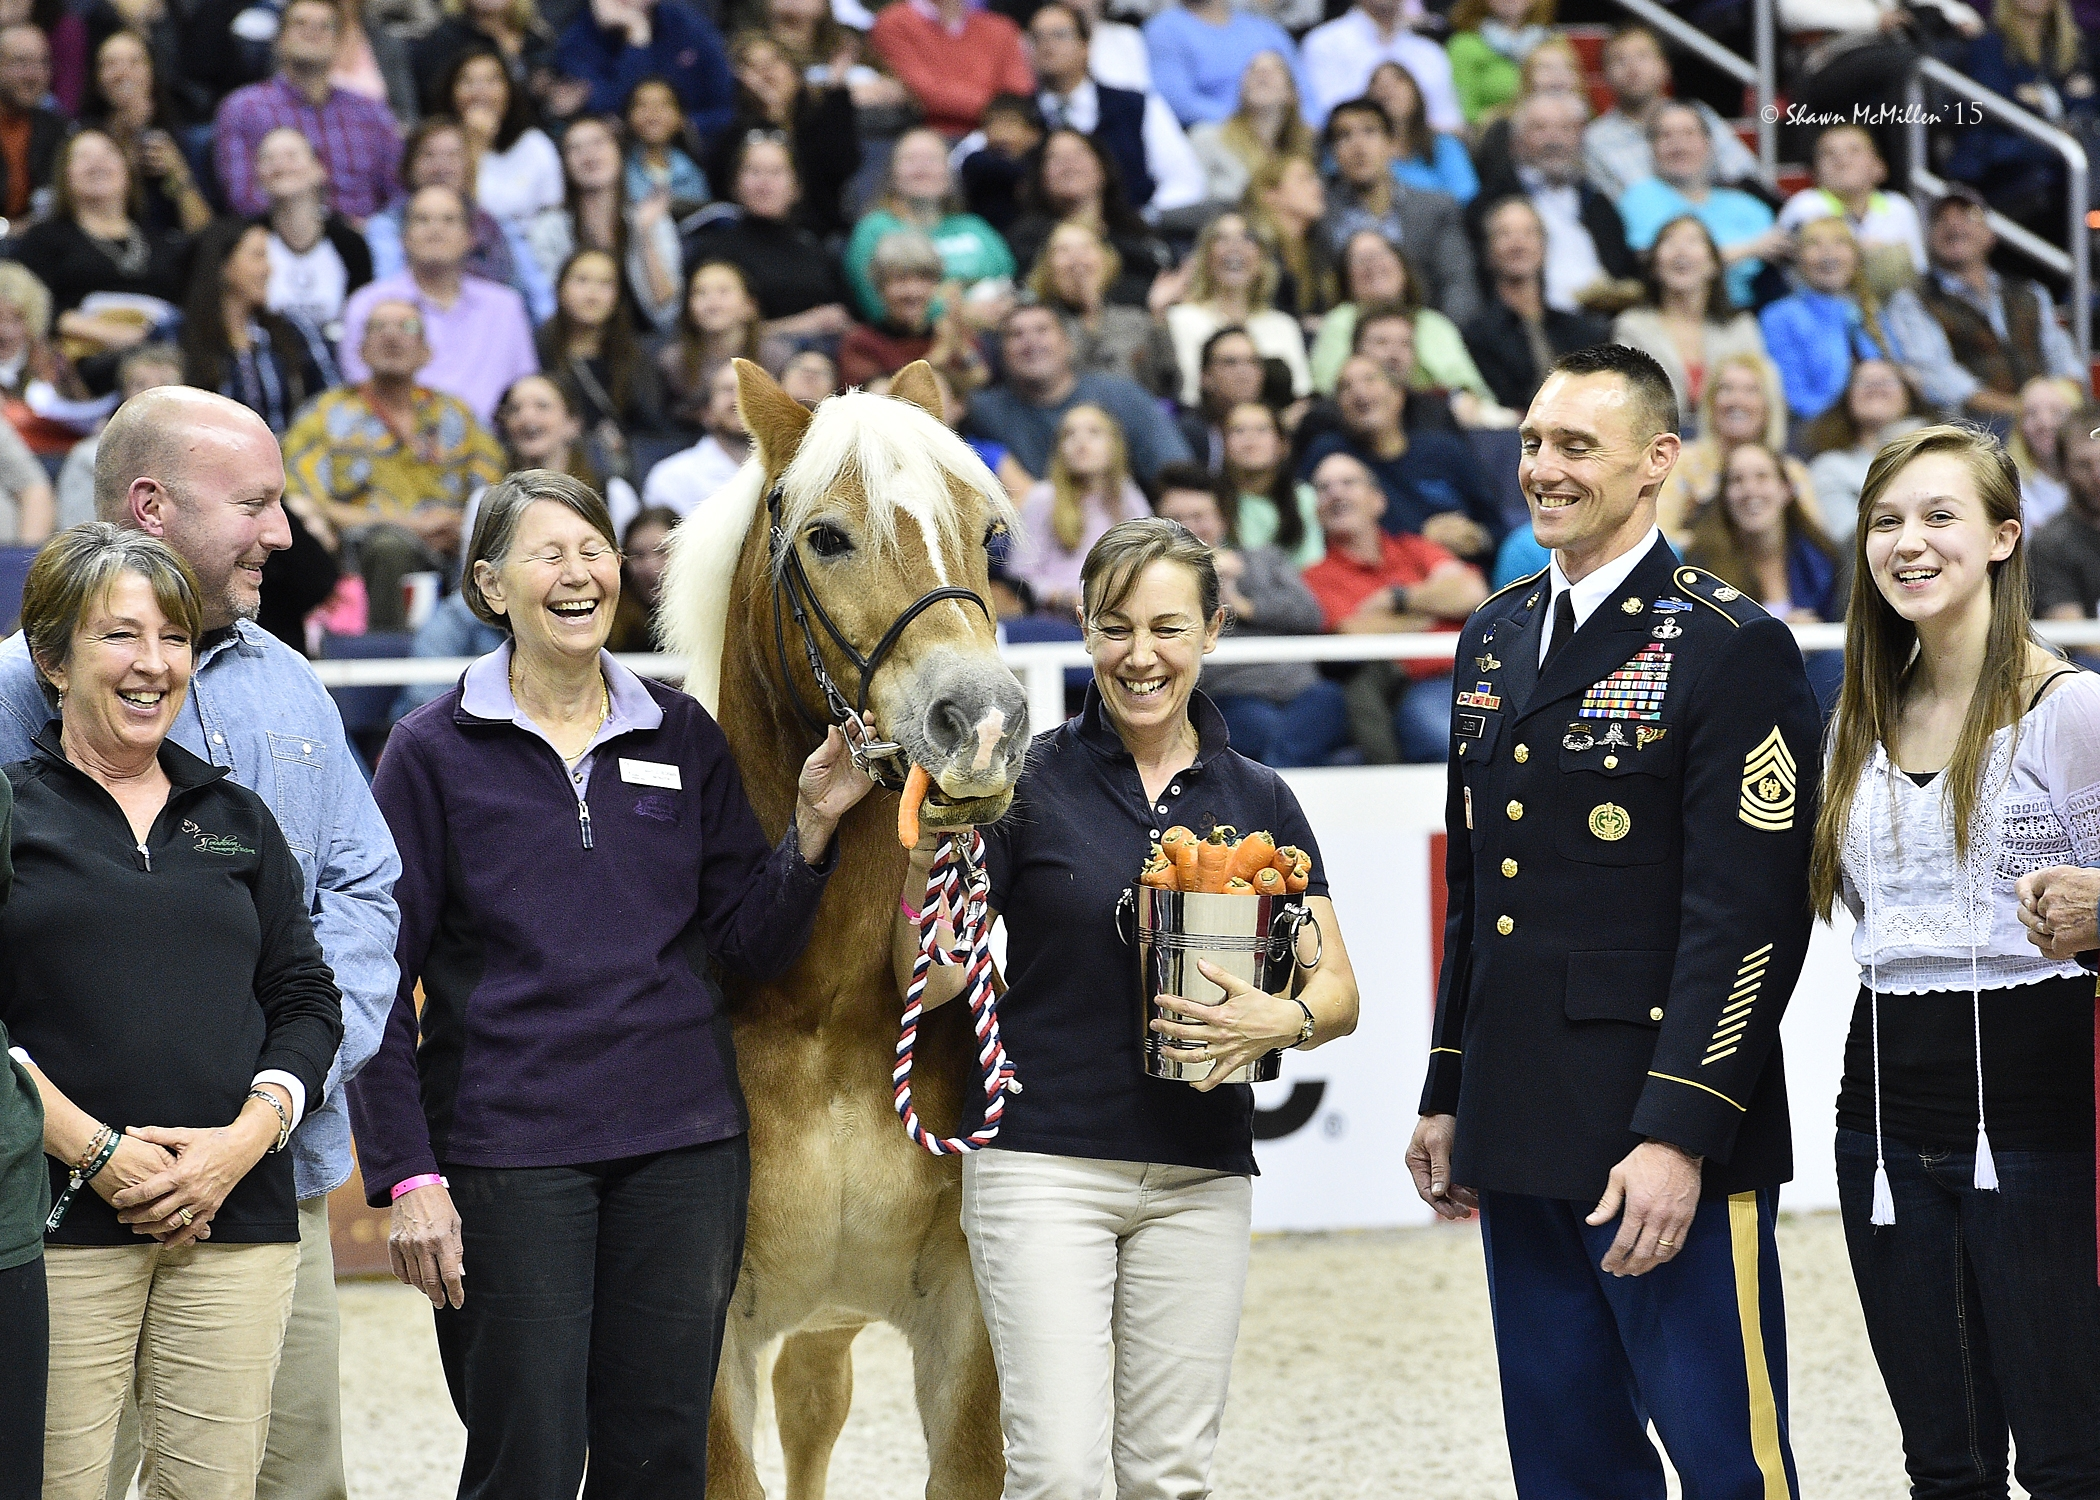 2015 Klinger Award Winner: Andy, a 20-year-old Haflinger pony from Loudoun Therapeutic Riding Center in Leesburg, Virginia. <br><b>Photo by <a href='http://www.shawnmcmillen.com/' target='_blank'>Shawn McMillen Photography</a></b>